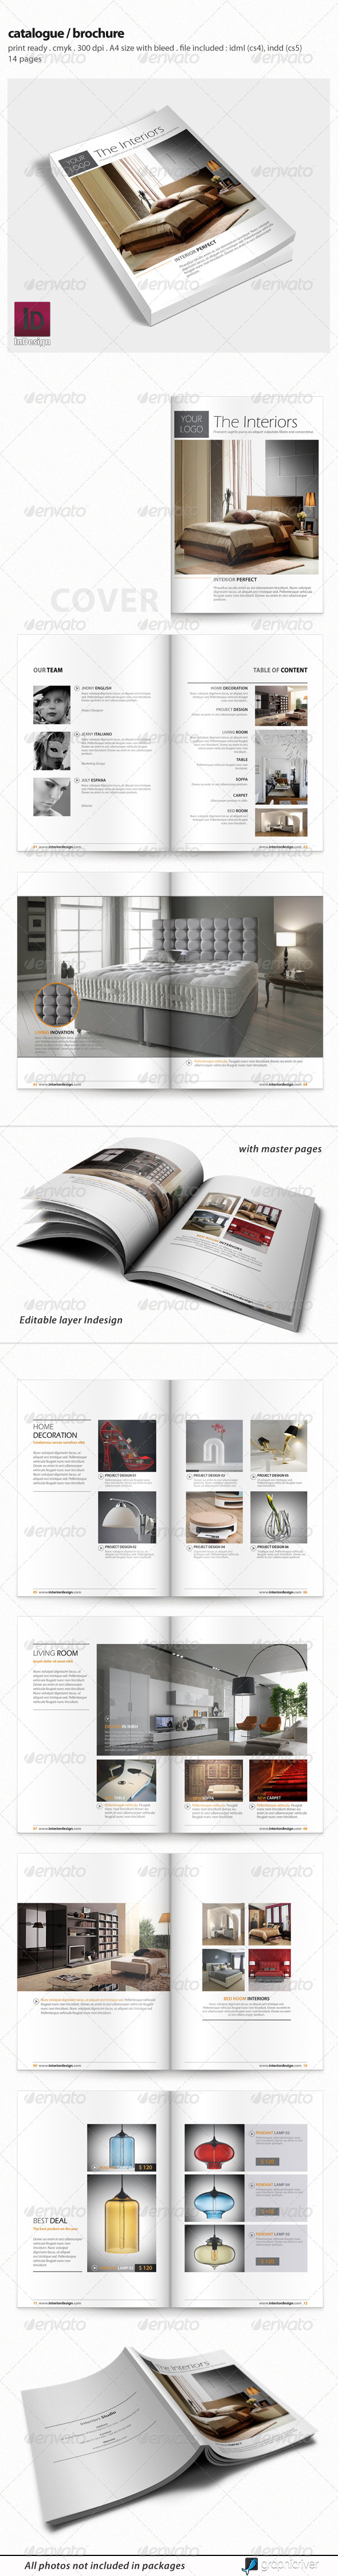 Clean Catalogue / Brochure Template - Catalogs Brochures